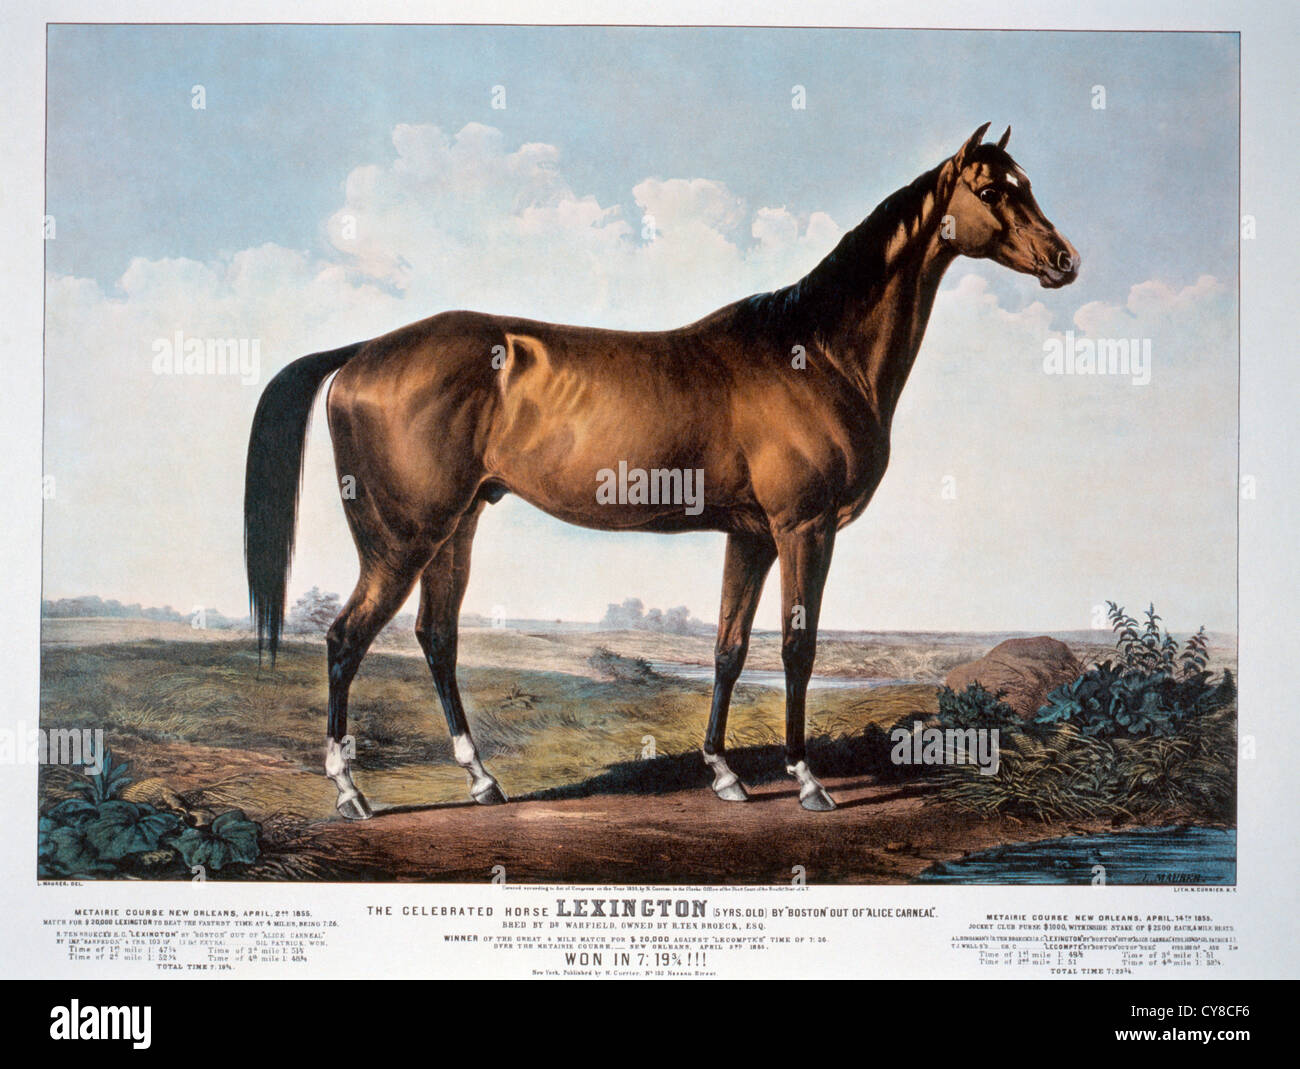 The Celebrated Horse, Lexington, Currier & Ives, 1855 - Stock Image